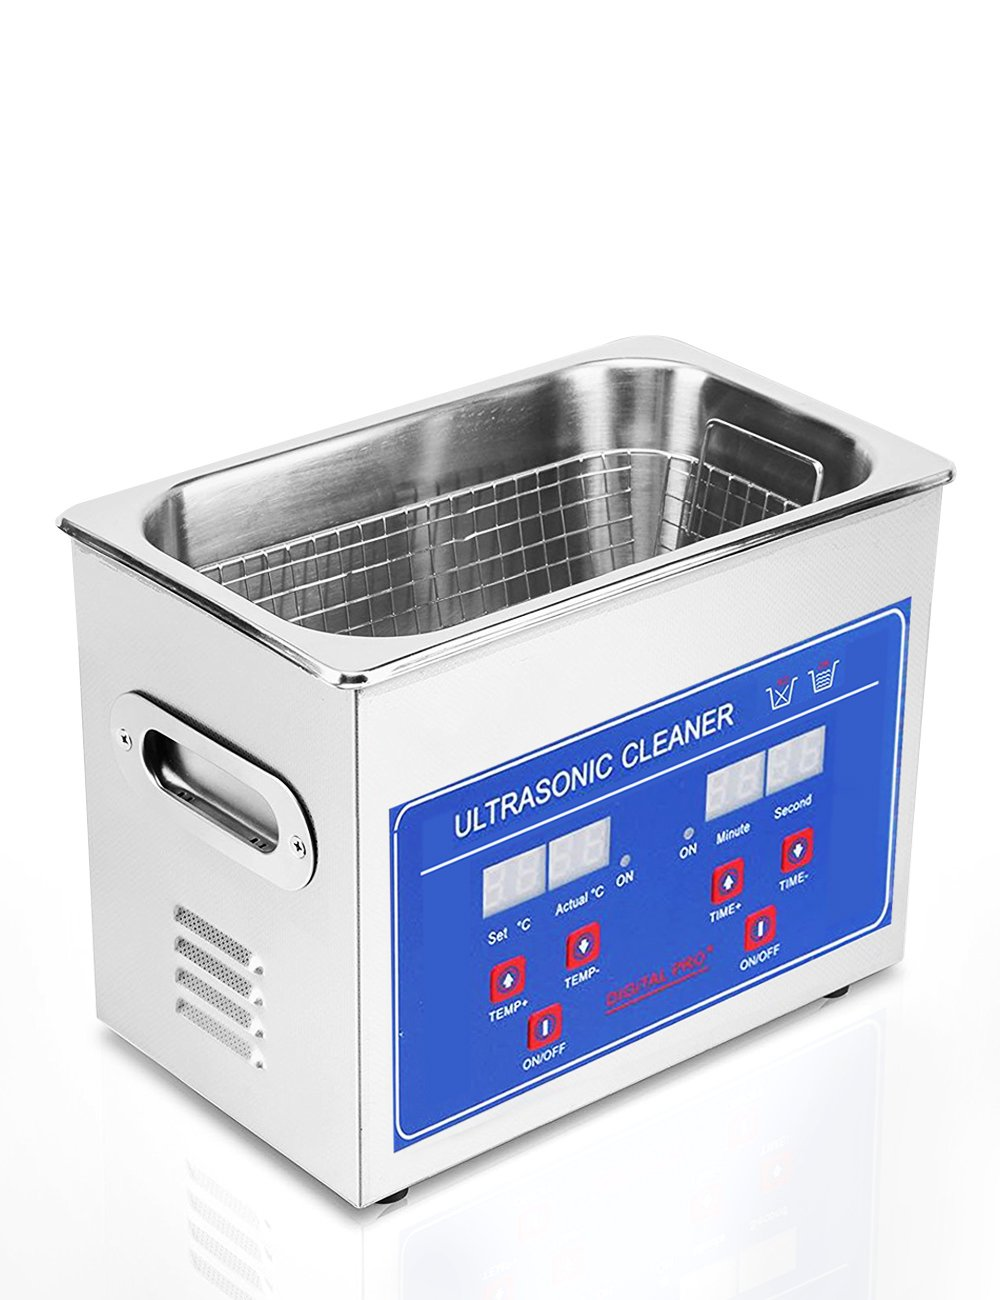 Jakan Ultrasonic Cleaners Digital Timer for Cleaning Jewelry and Eyeglass 100-120V/40KHz 60W 0.6L stainless steel